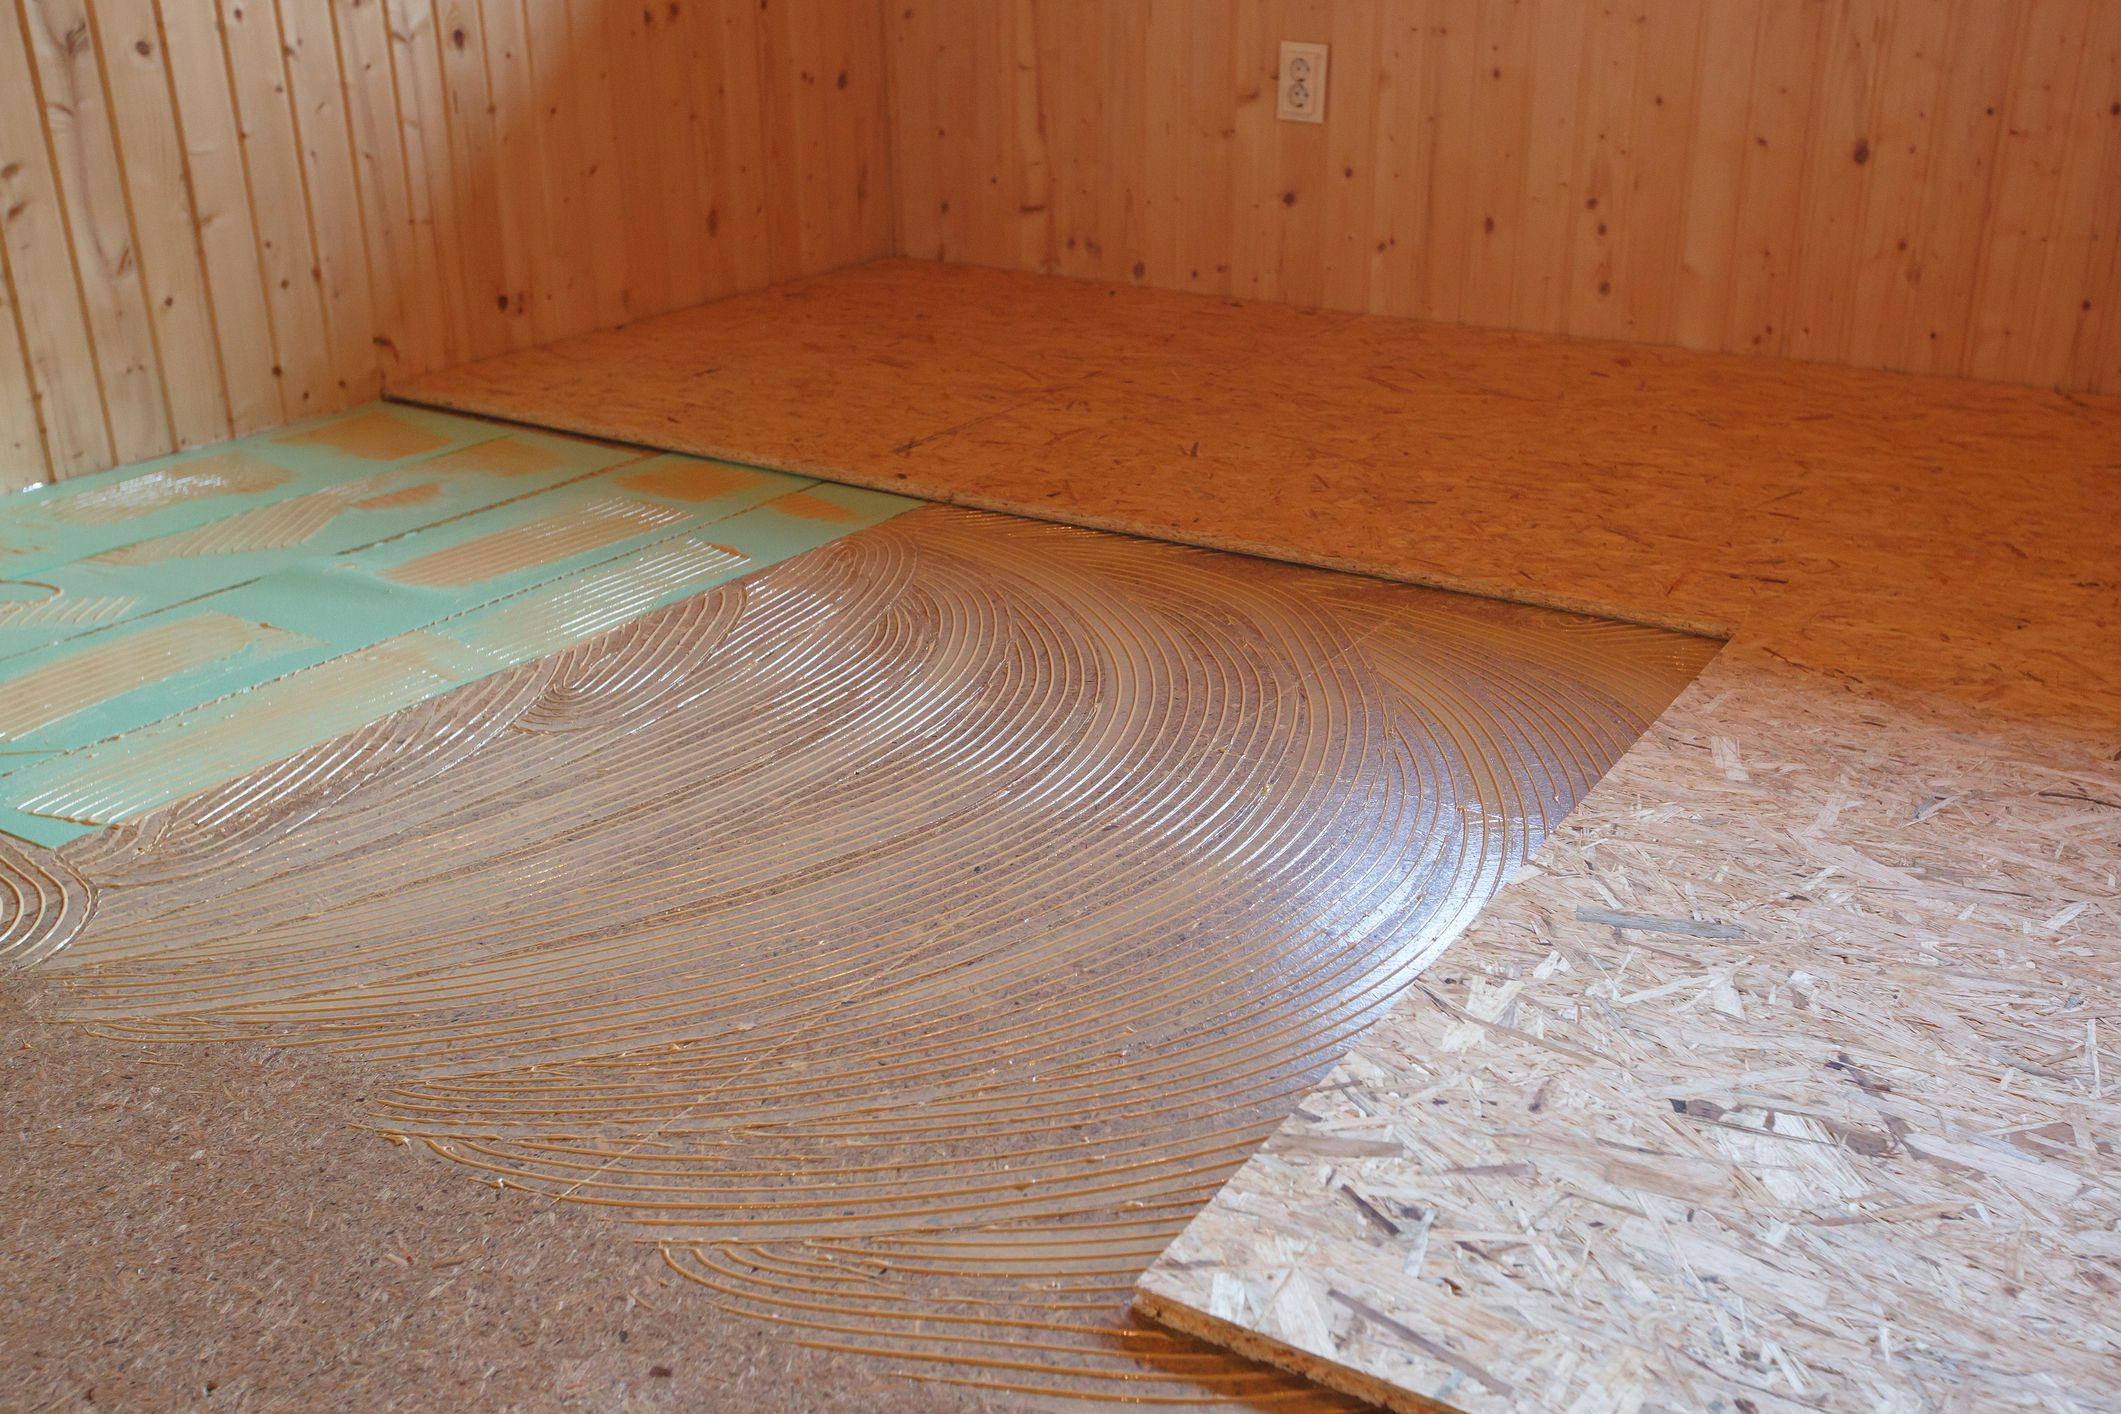 hardwood floor repair companies near me of types of subfloor materials in construction projects regarding gettyimages 892047030 5af5f46fc064710036eebd22